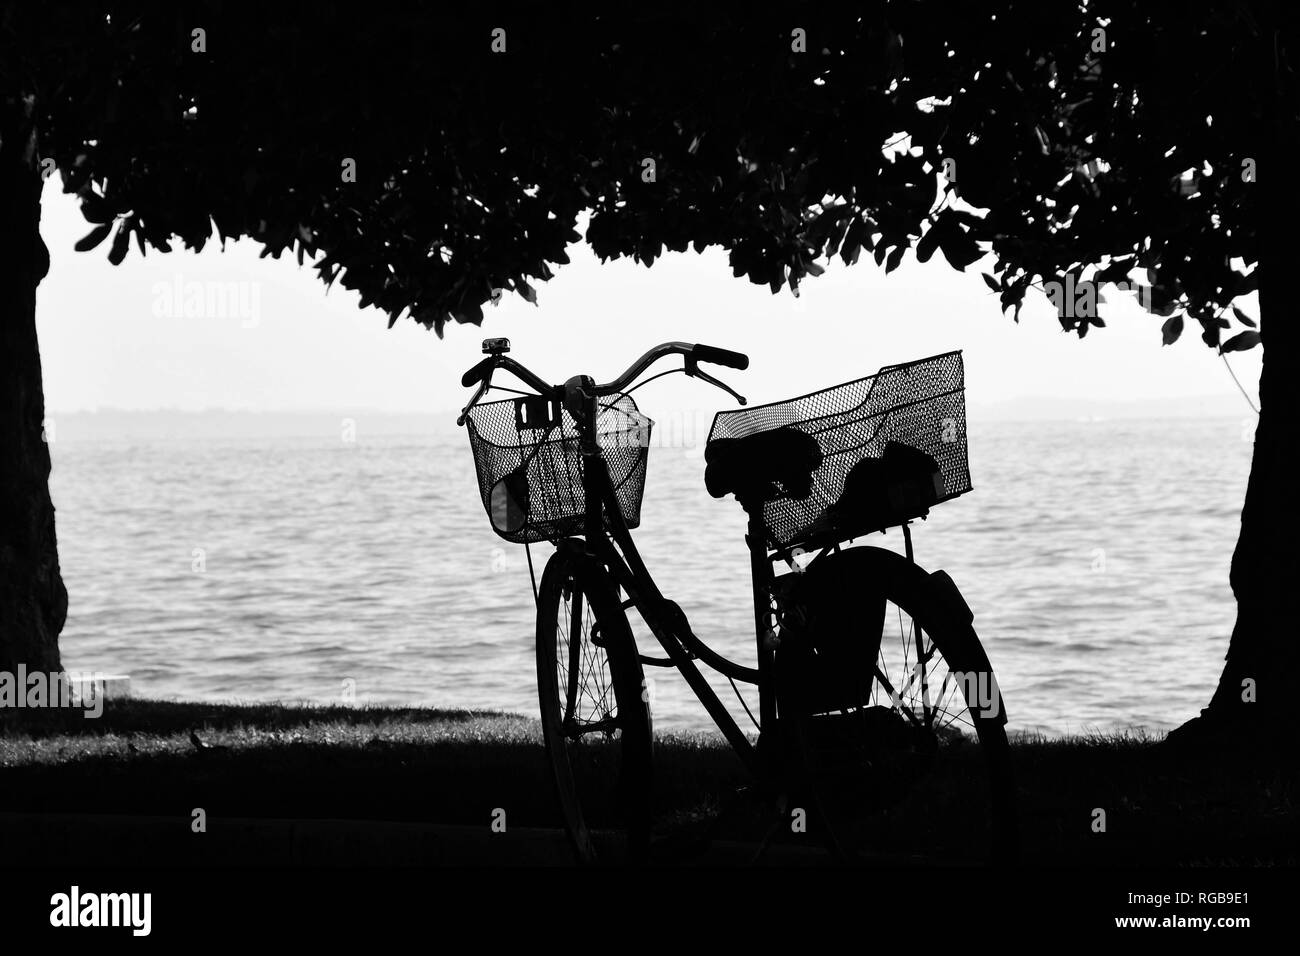 GARDA, ITALY - SEPTEMBER 2018: Black and white view of a bicycle with baskets parked on the lakeside in Garda on Lake Garda. The view is framed by tre - Stock Image